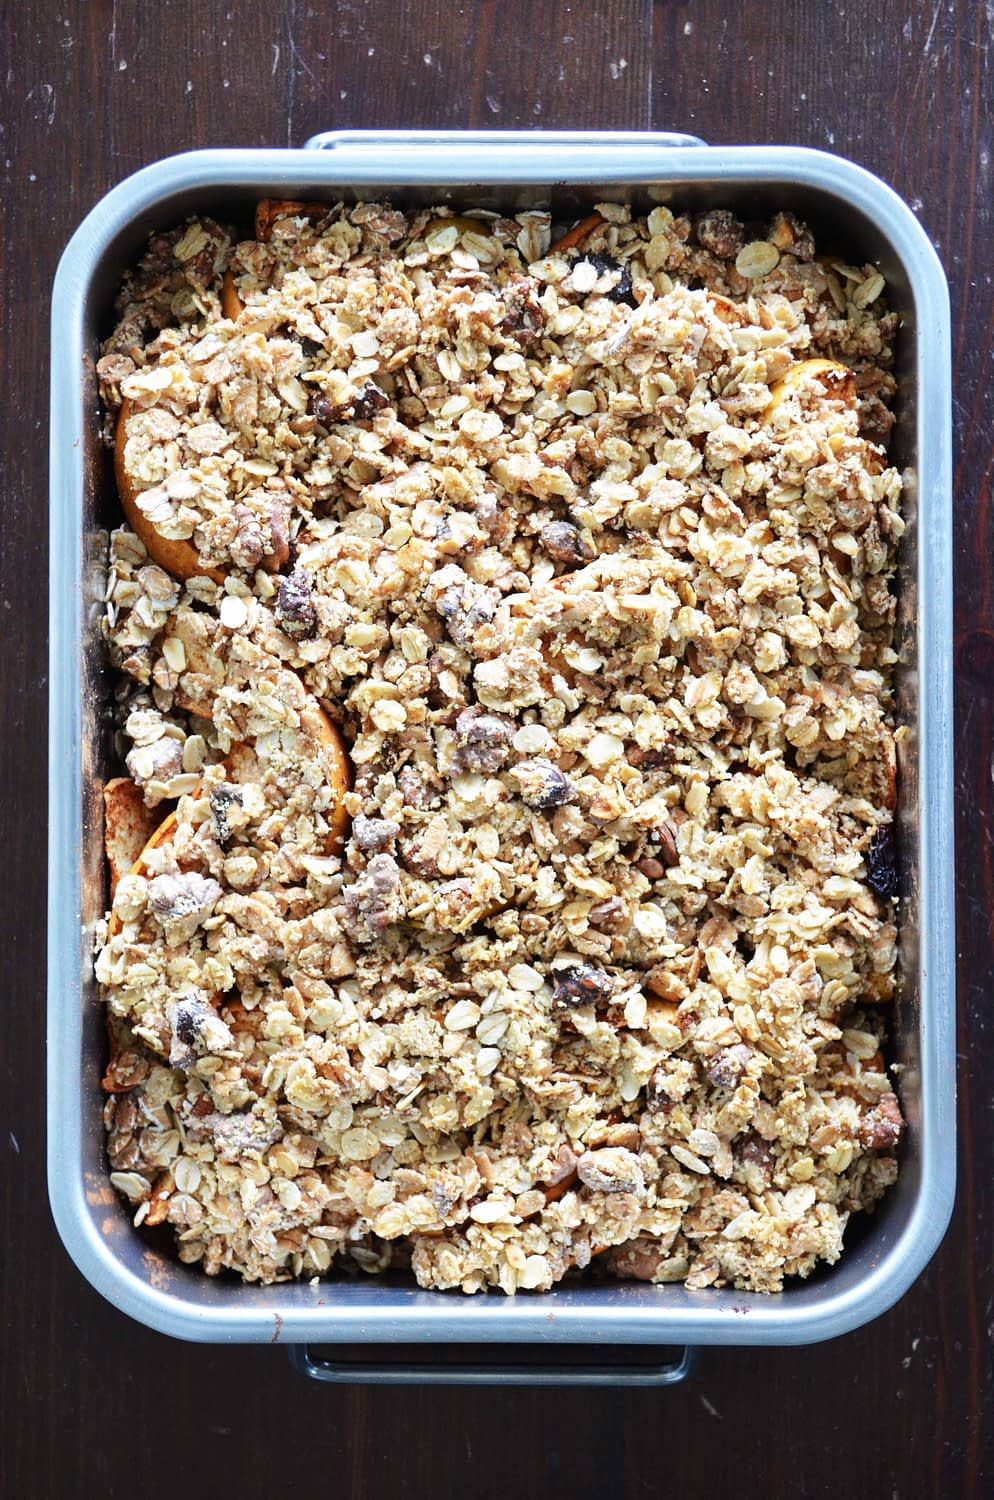 A delicious Baked Apple Crisp recipe from That Healthy Kitchen. This version is gluten free and vegan, and naturally sweetened. Find the recipe on www.thathealthykitchen.com/baked-apple-crisp